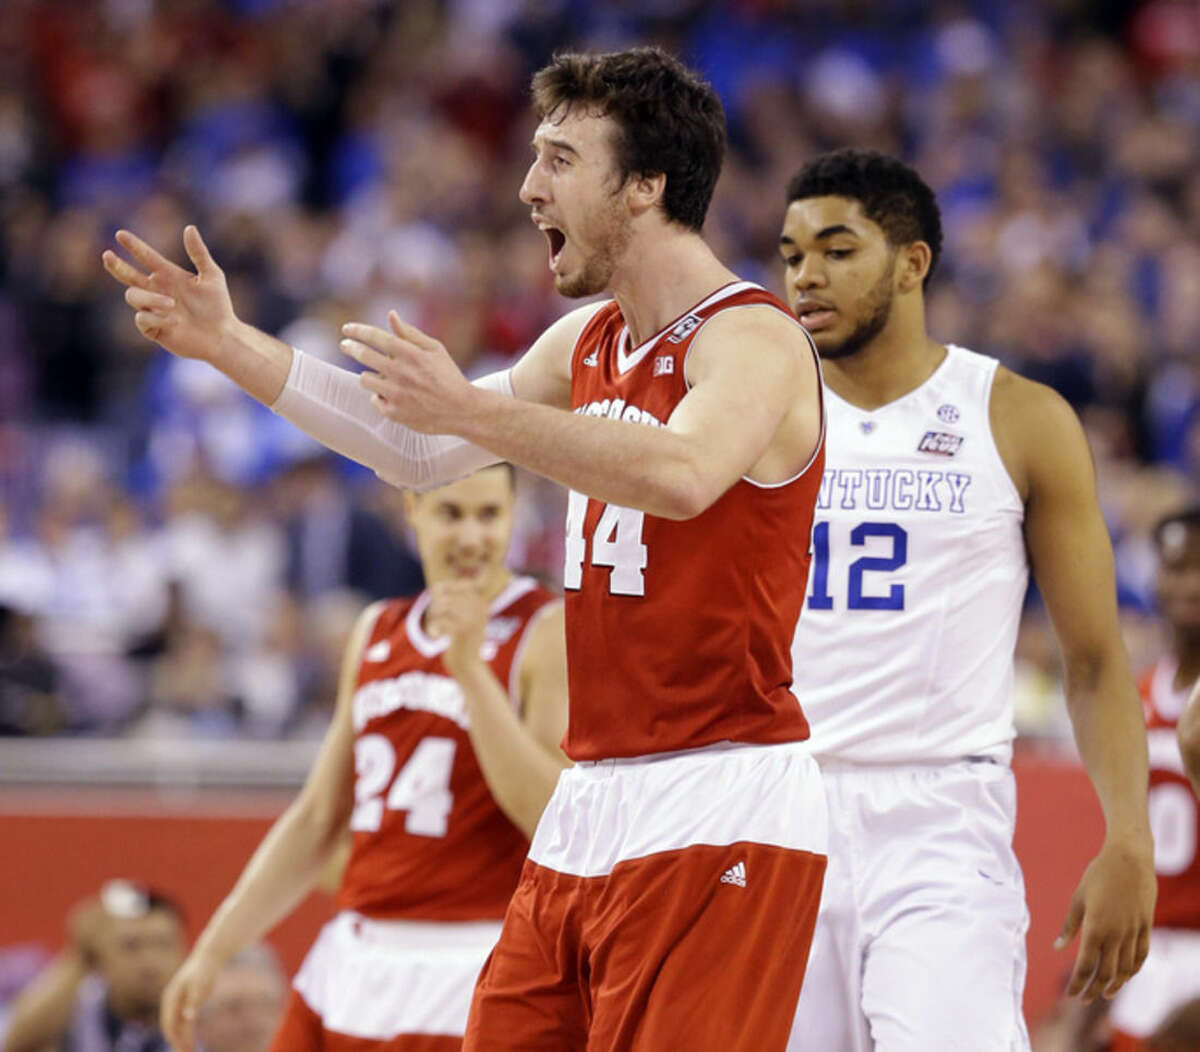 Wisconsin's Frank Kaminsky reacts during the second half of the NCAA Final Four tournament college basketball semifinal game against Kentucky Saturday, April 4, 2015, in Indianapolis. (AP Photo/Michael Conroy)